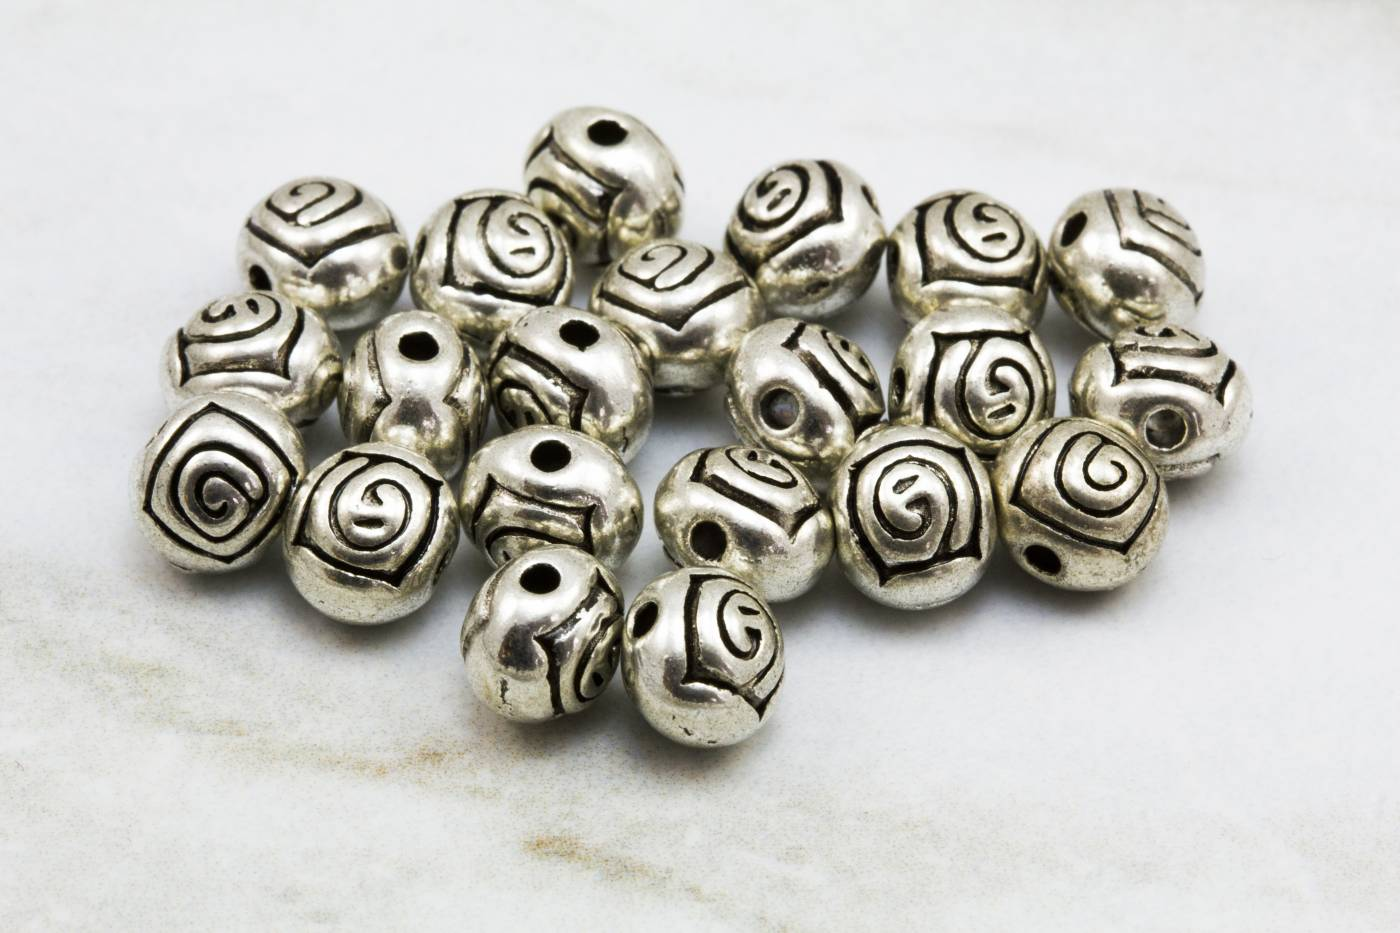 rose-pattern-round-ball-silver-beads.jpg